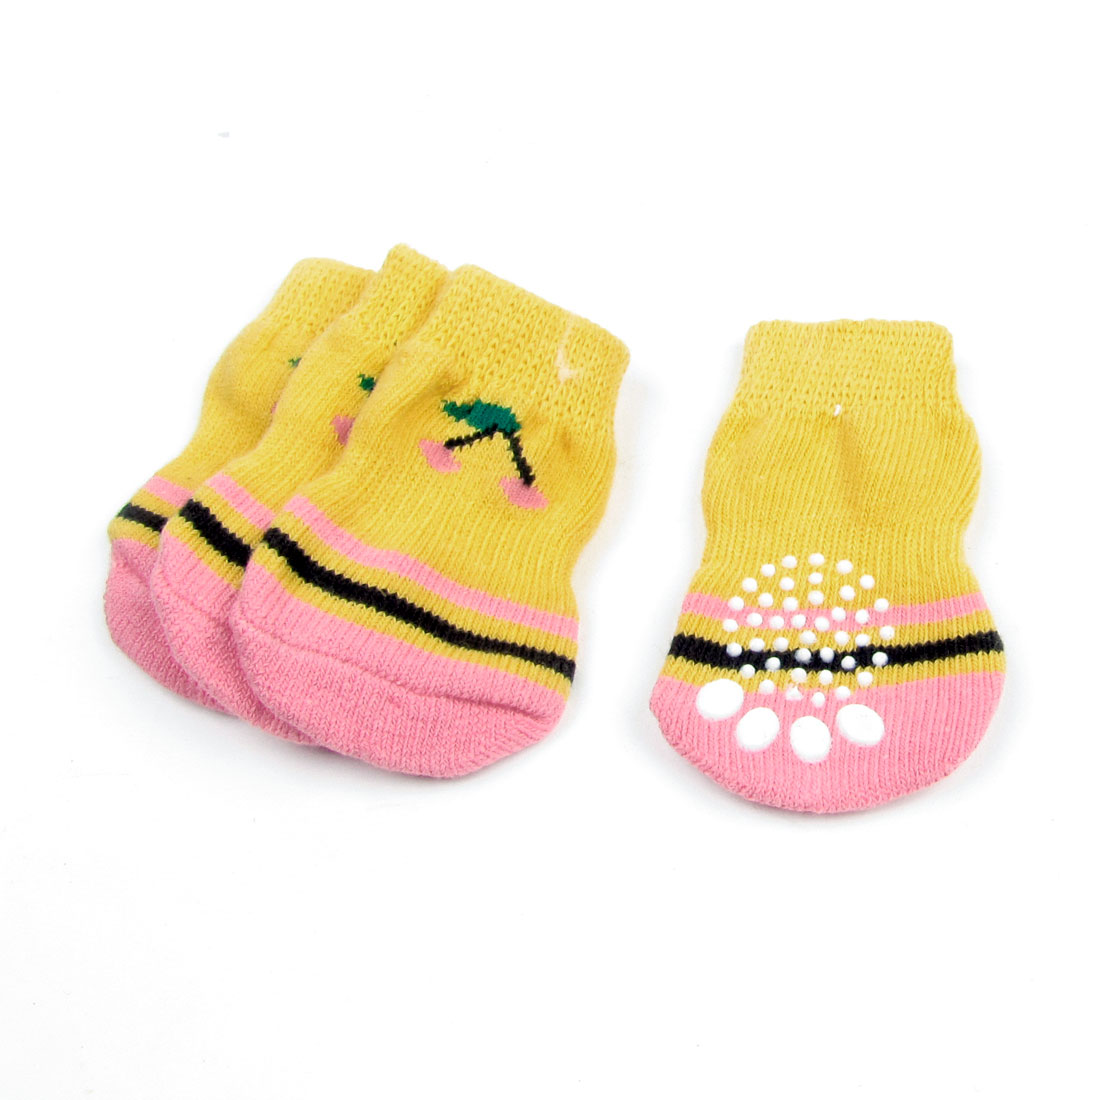 2 Pairs Paw Pattern Antislip Bottom Pet Dog Doggie Puppy Socks Orange Pink